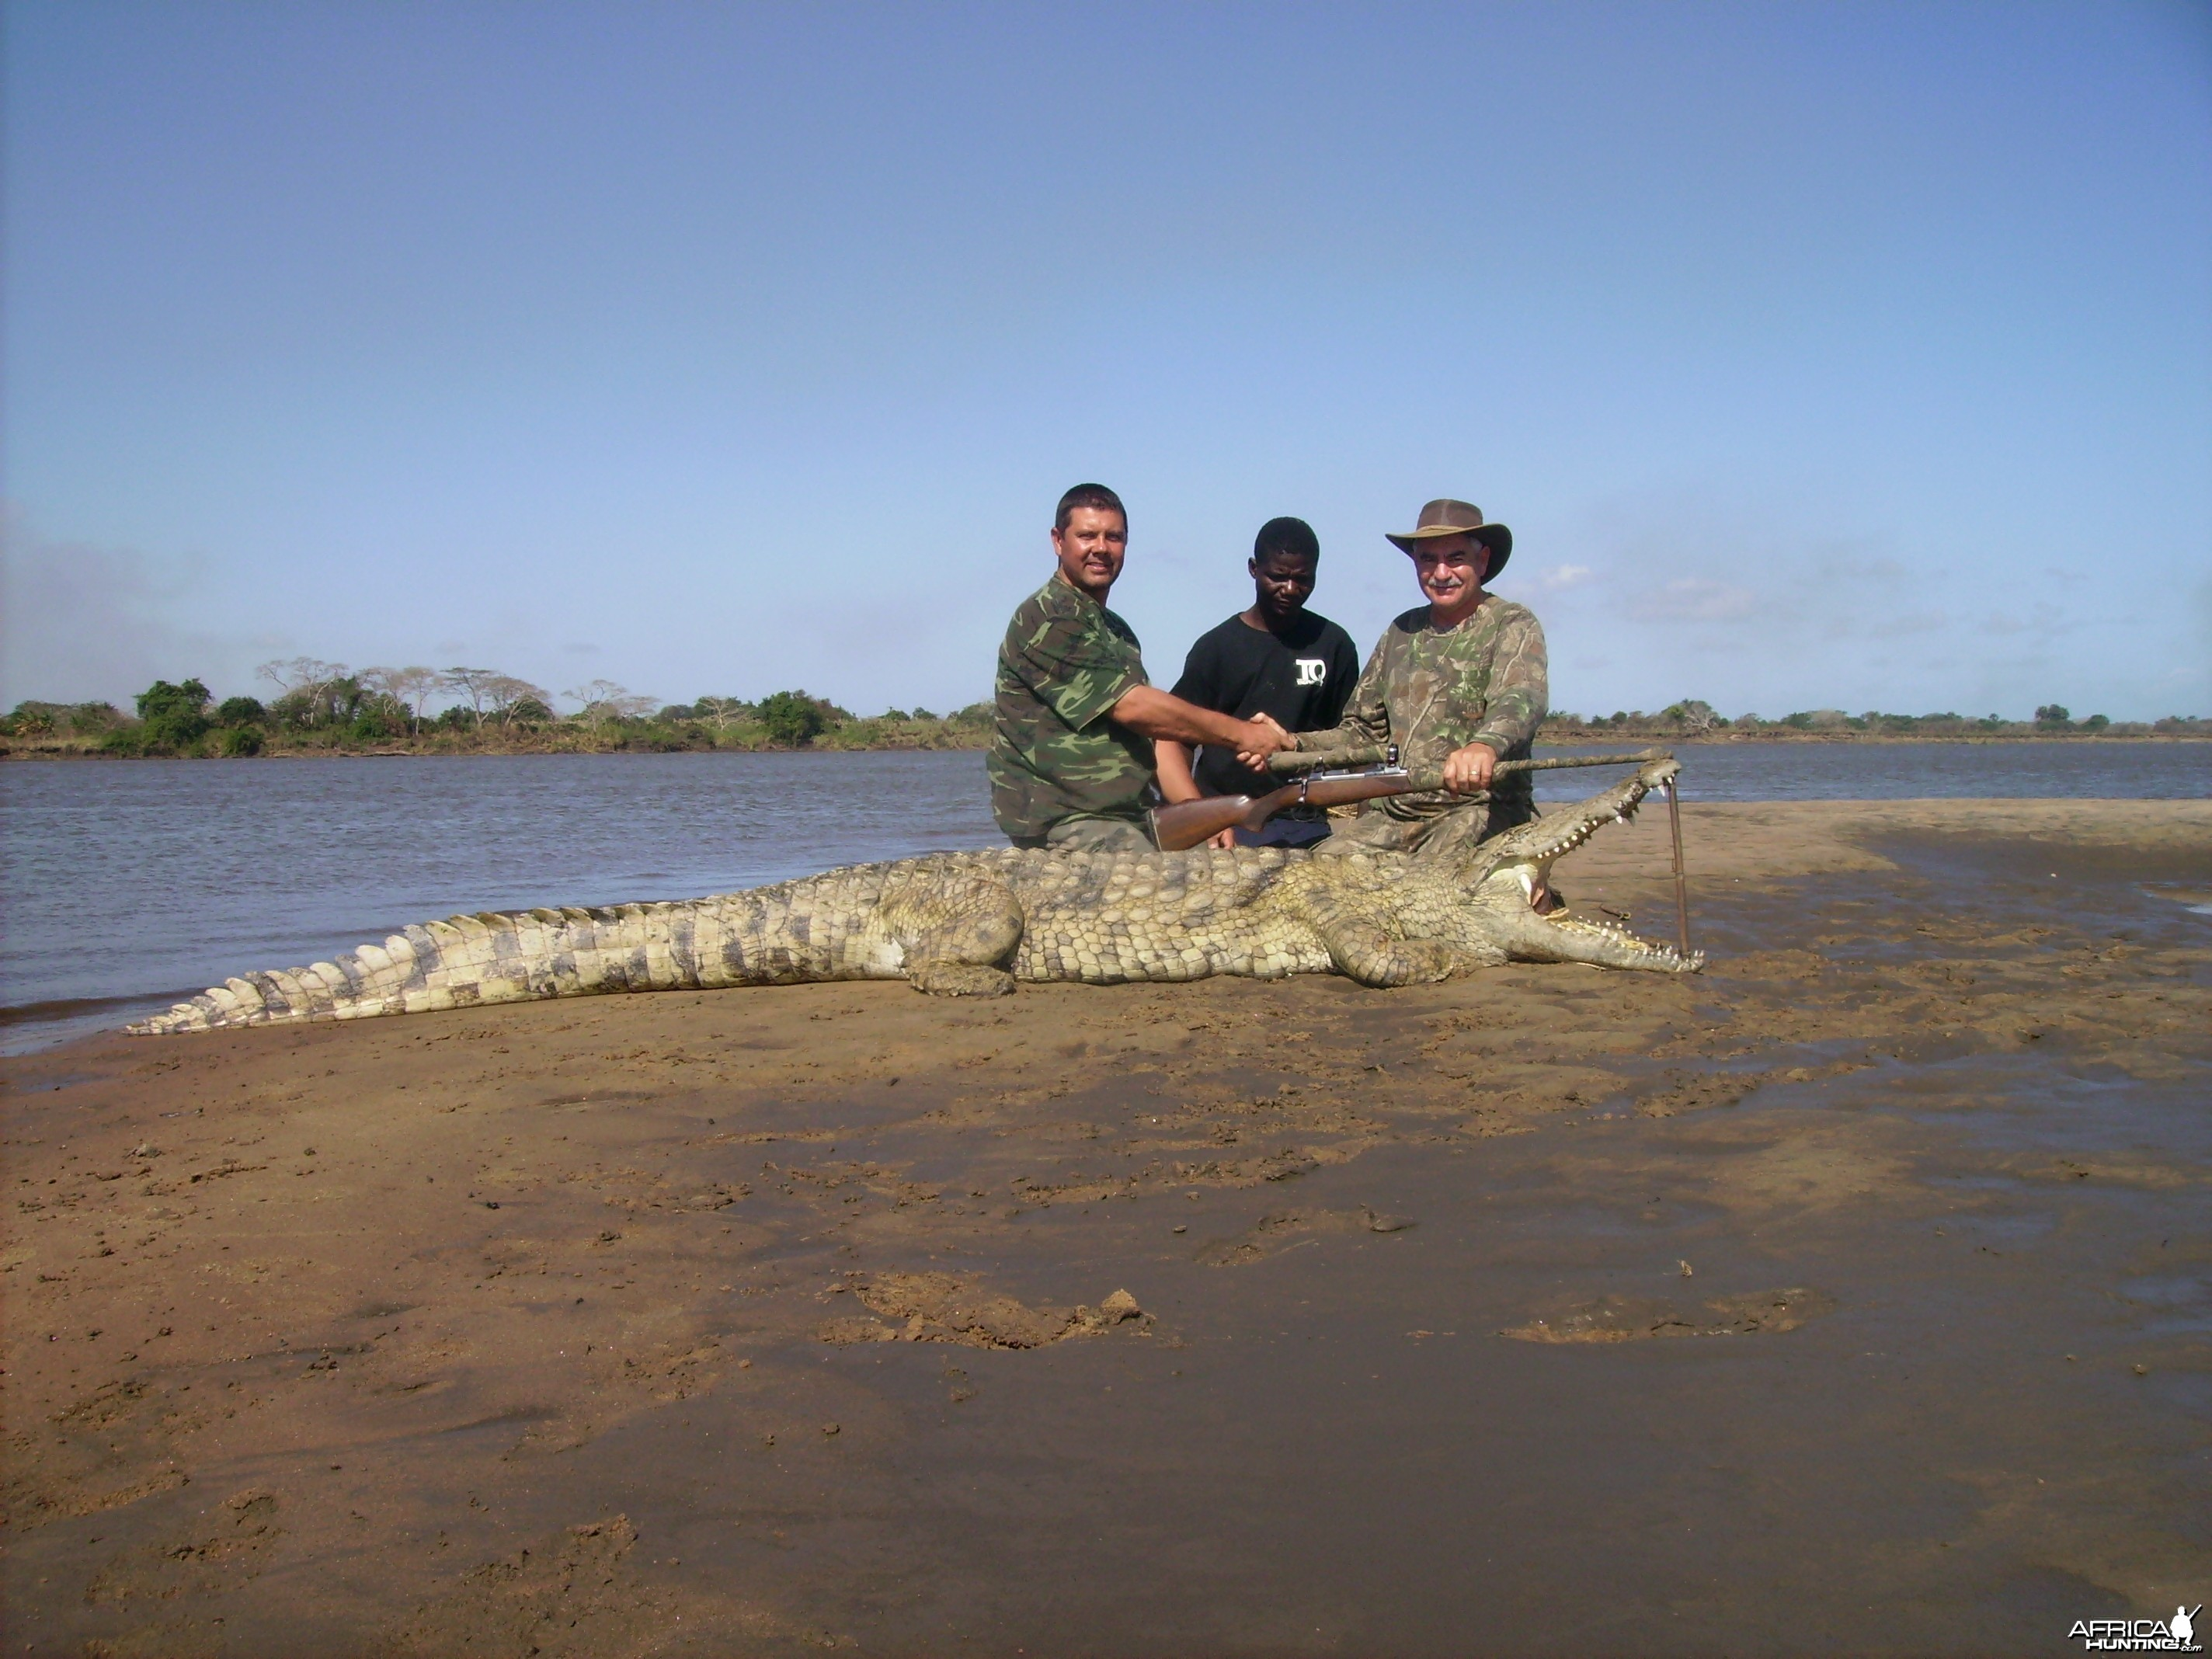 leon comrinck with mozambique croc, 2010